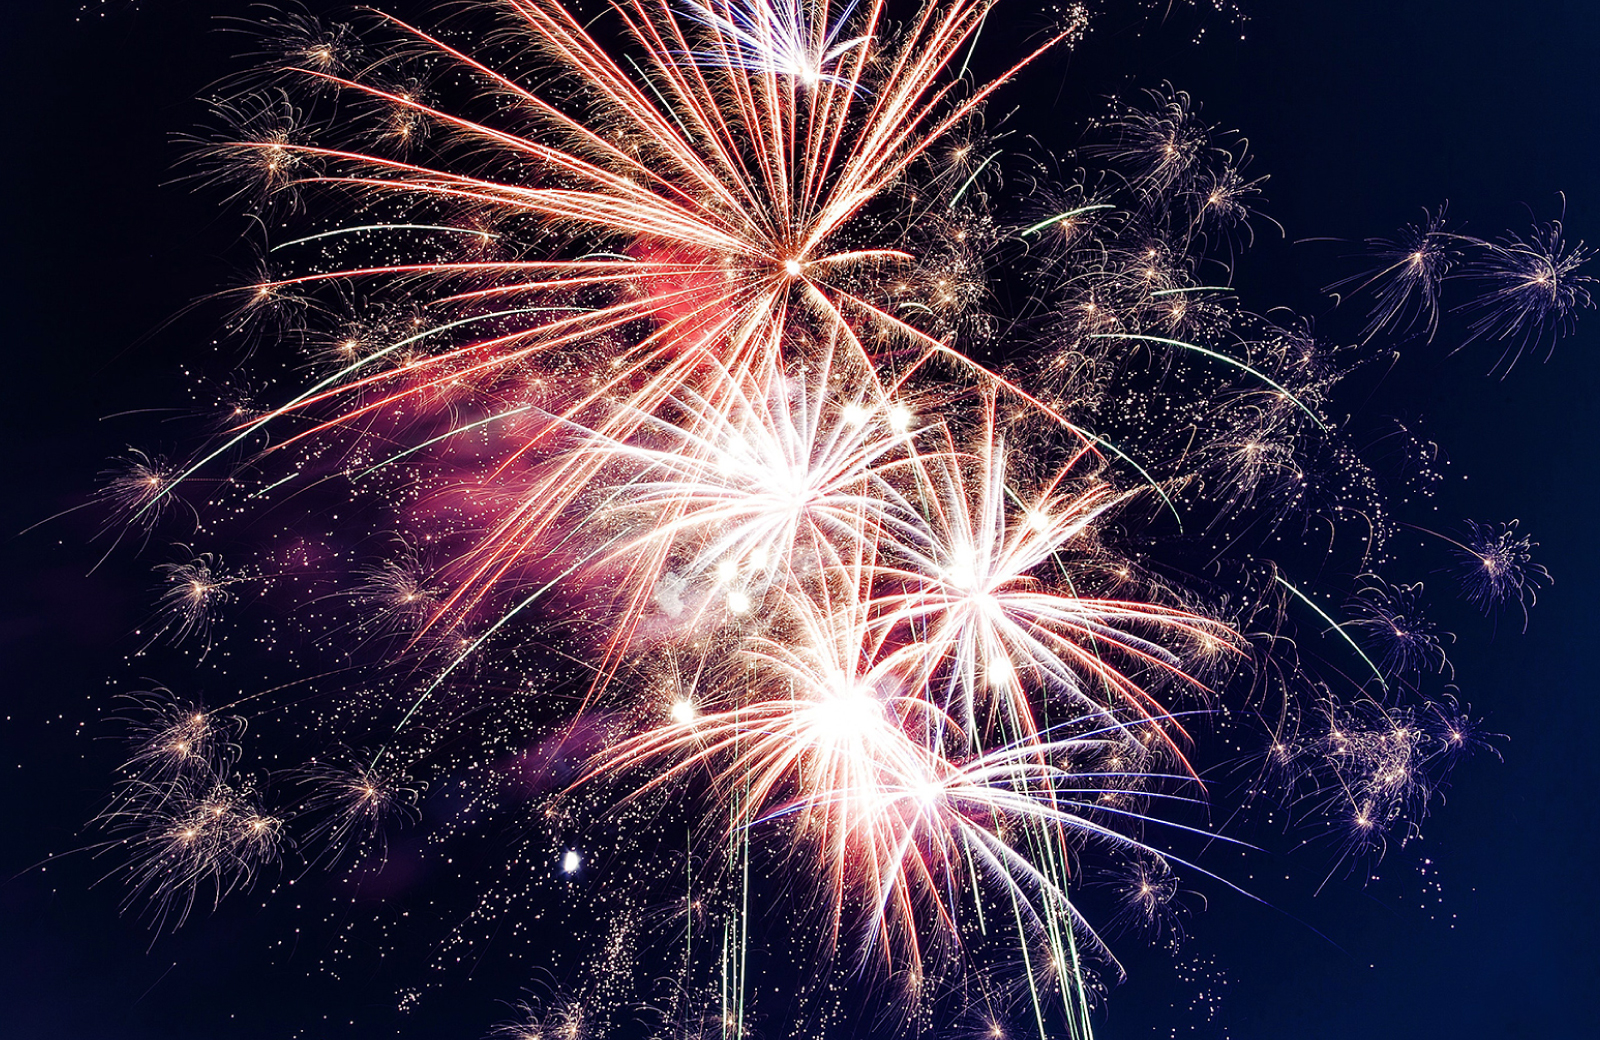 Huge pink and white fireworks exploding in the night sky - 4th of July NYC - The Cole